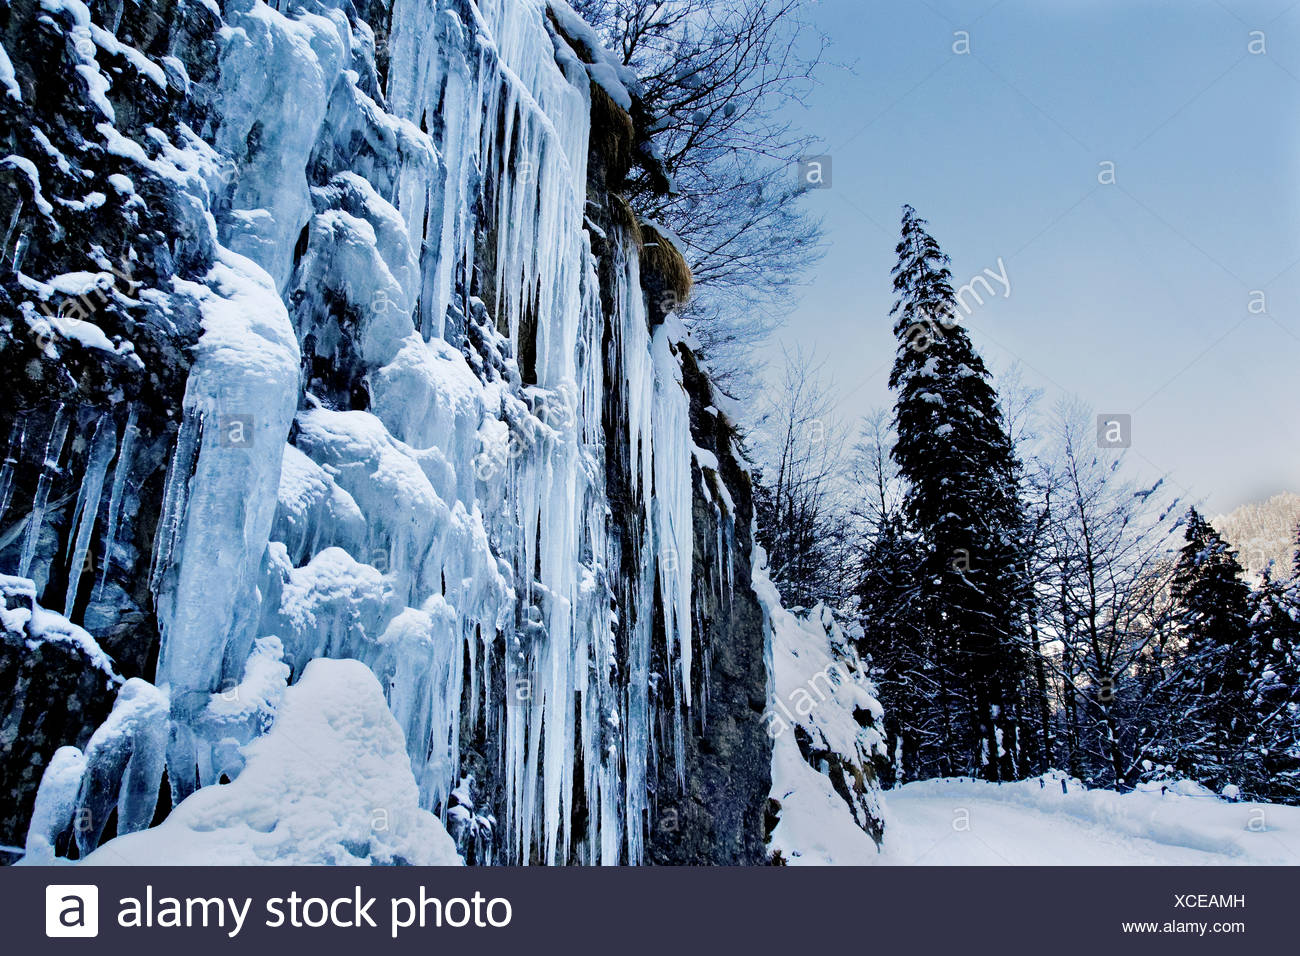 Ice, icicle, Emmental, cliff wall, spruce, frost, canton Bern, Kemmeriboden, scenery, nature, Picea abies, spruce, Schangnau, sn - Stock Image